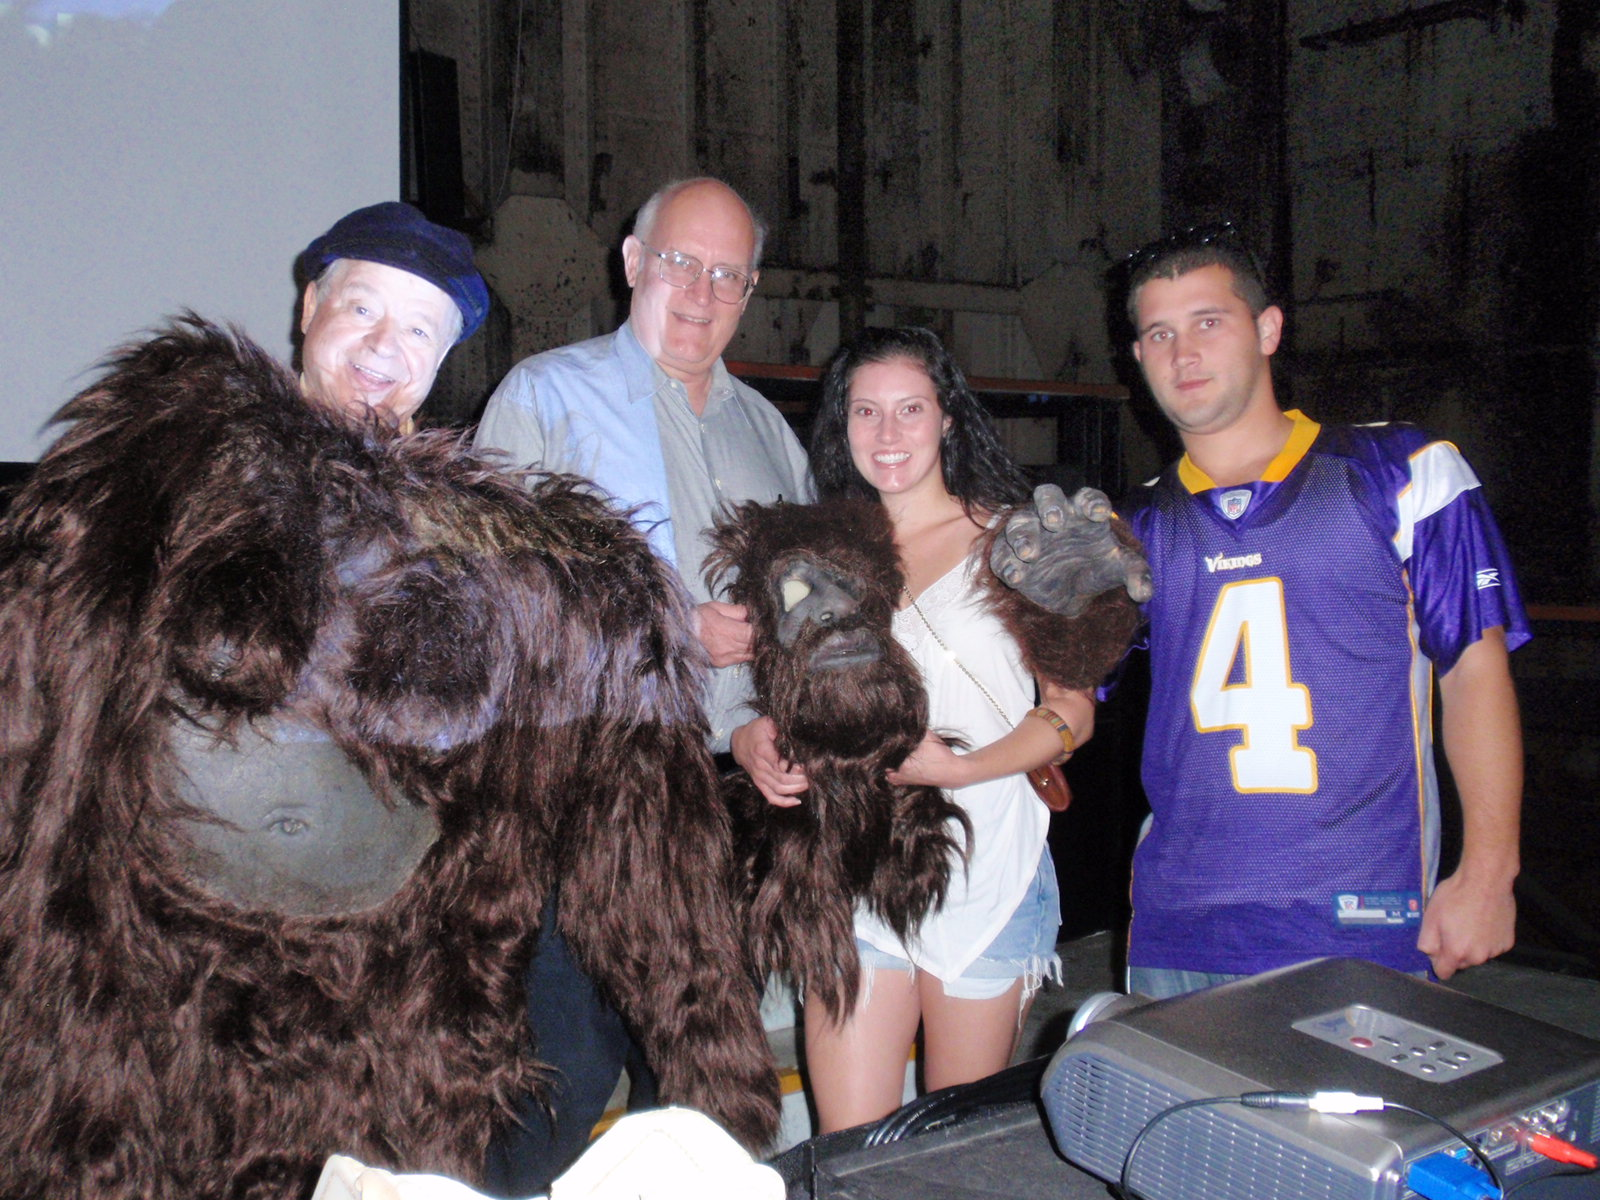 """Philip Morris at far left holding his Bigfoot costume; Arlee Bird to the right of Morris, from whose blog   Tossing It Out   this photo was acquired.Photo taken by Los Angeles magician,  Whit """"Pop"""" Haydn"""